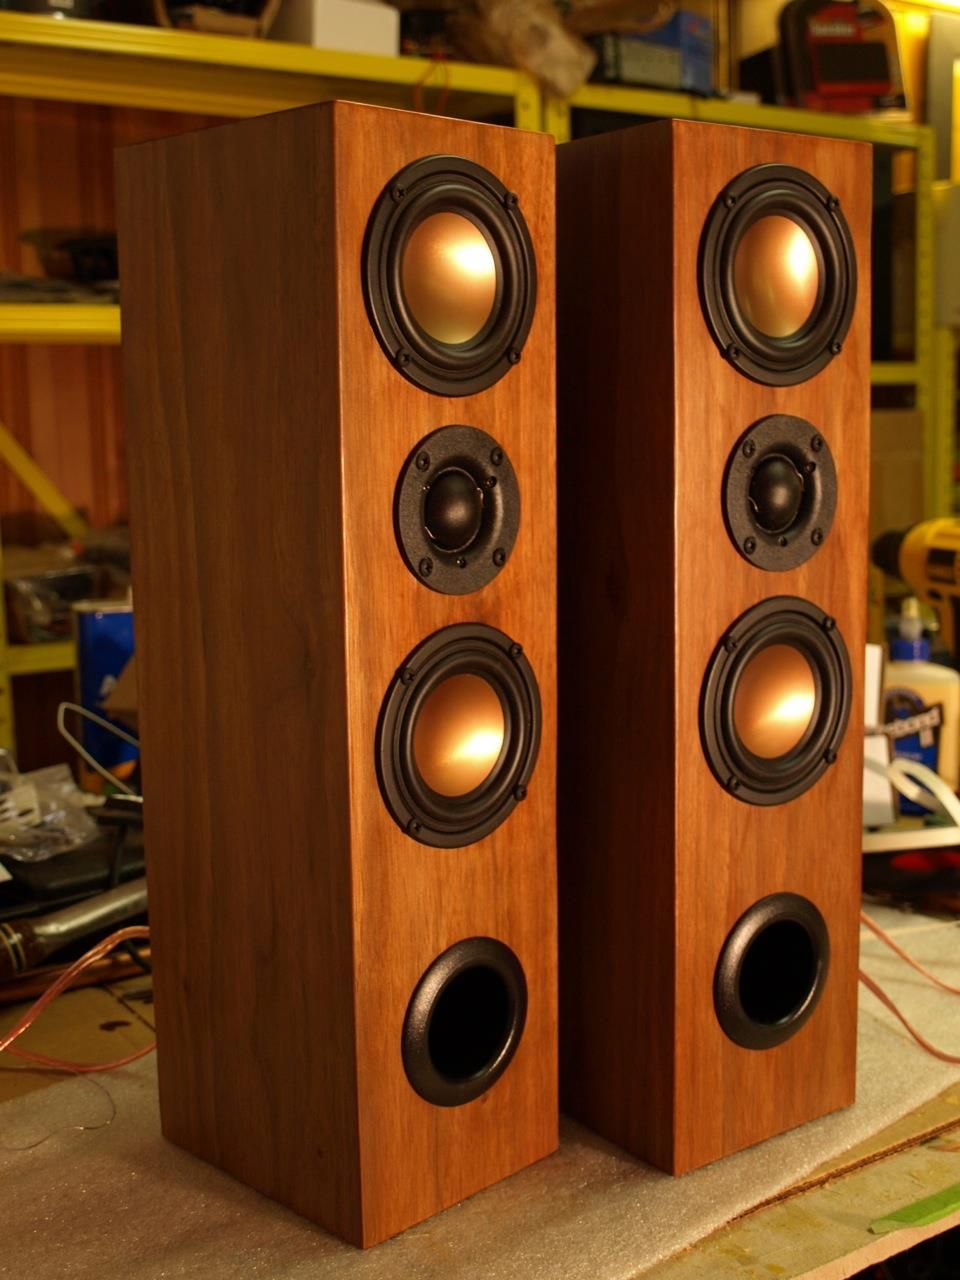 Fantastic home build speakers / Hapso Speaker projects